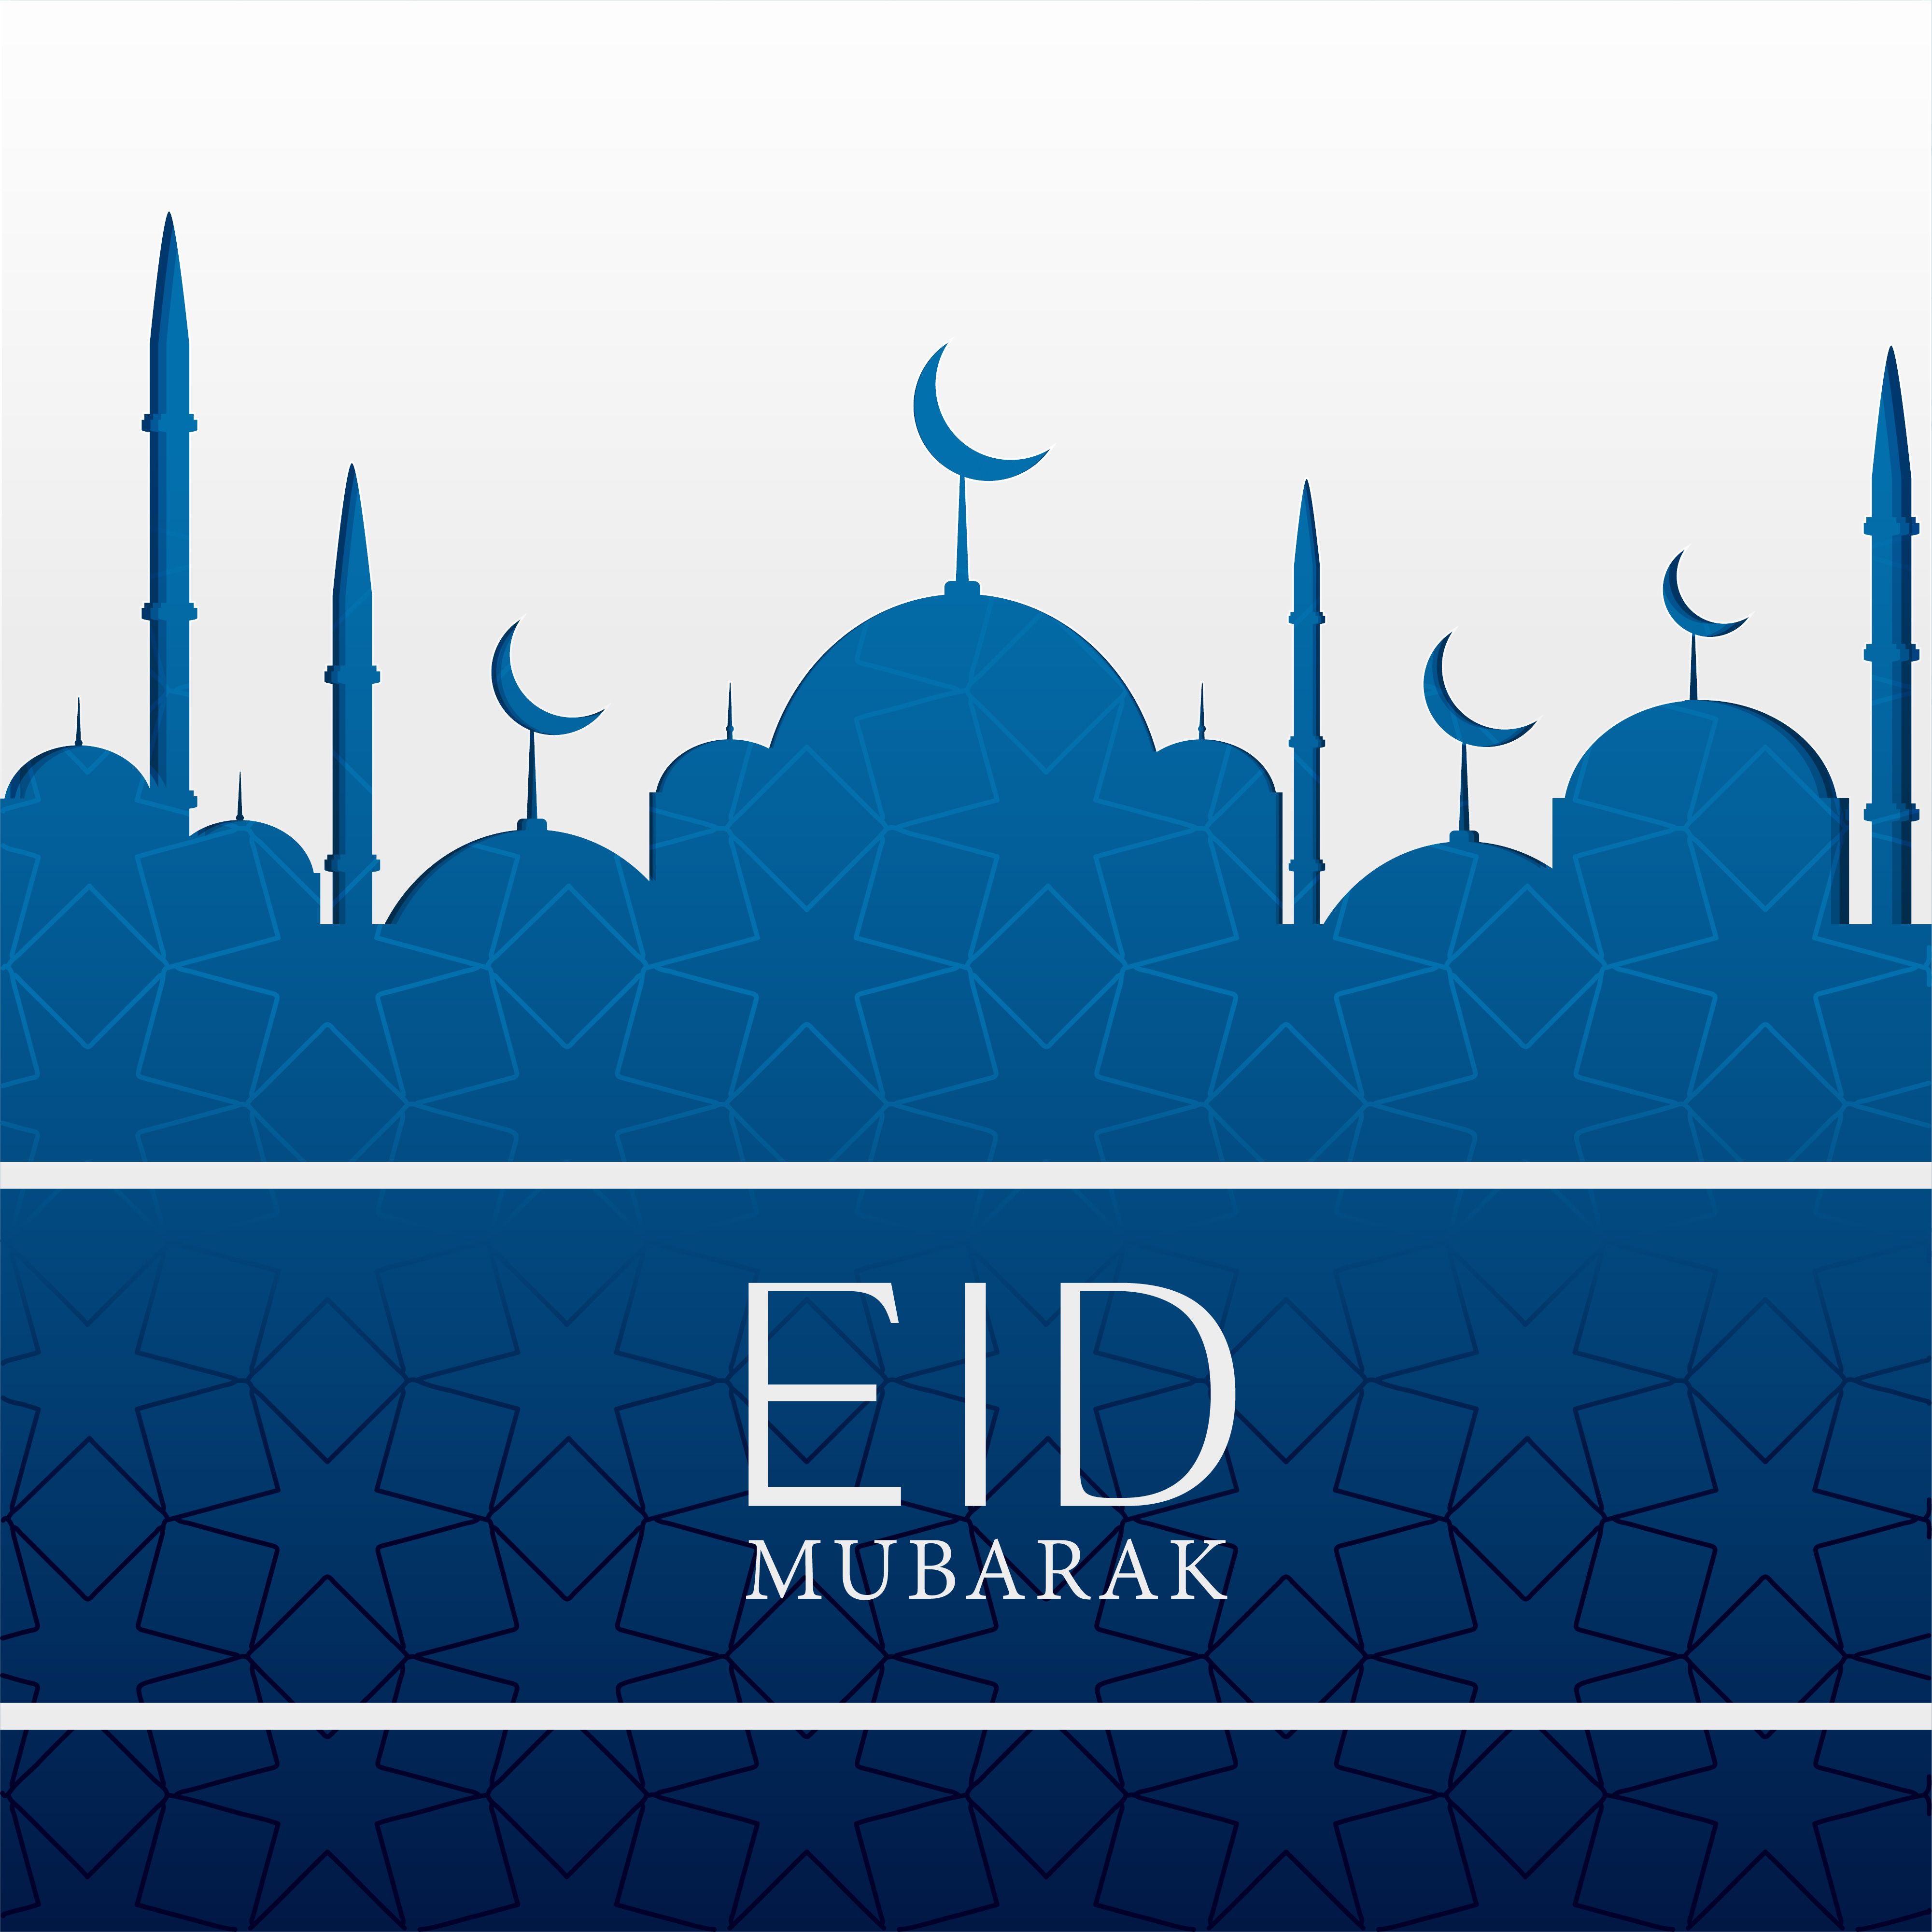 eid mubarak islamic background with blue mosque - Download ...